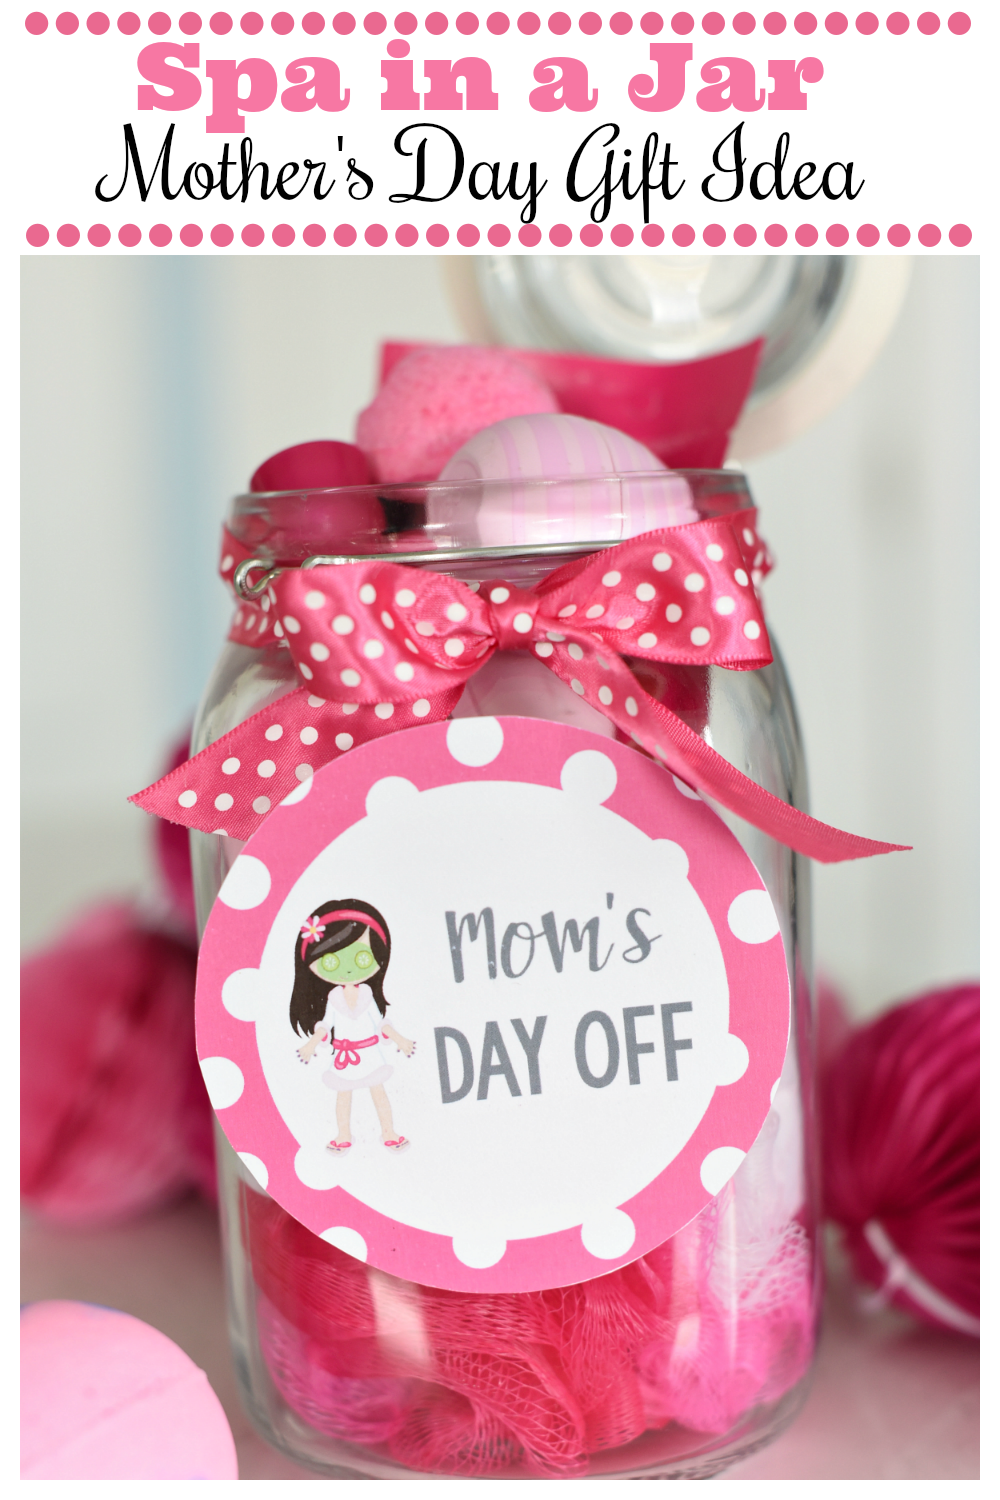 Fun Spa in a Jar Mother's Day Gift. Give mom everything she needs to relax this year for Mother's Day. A Spa in a Jar is the perfect way to celebrate mom this Mother's Day. #Mother'sday, #Mother'sDaygiftidea, #spainajar #mothersdaygifts